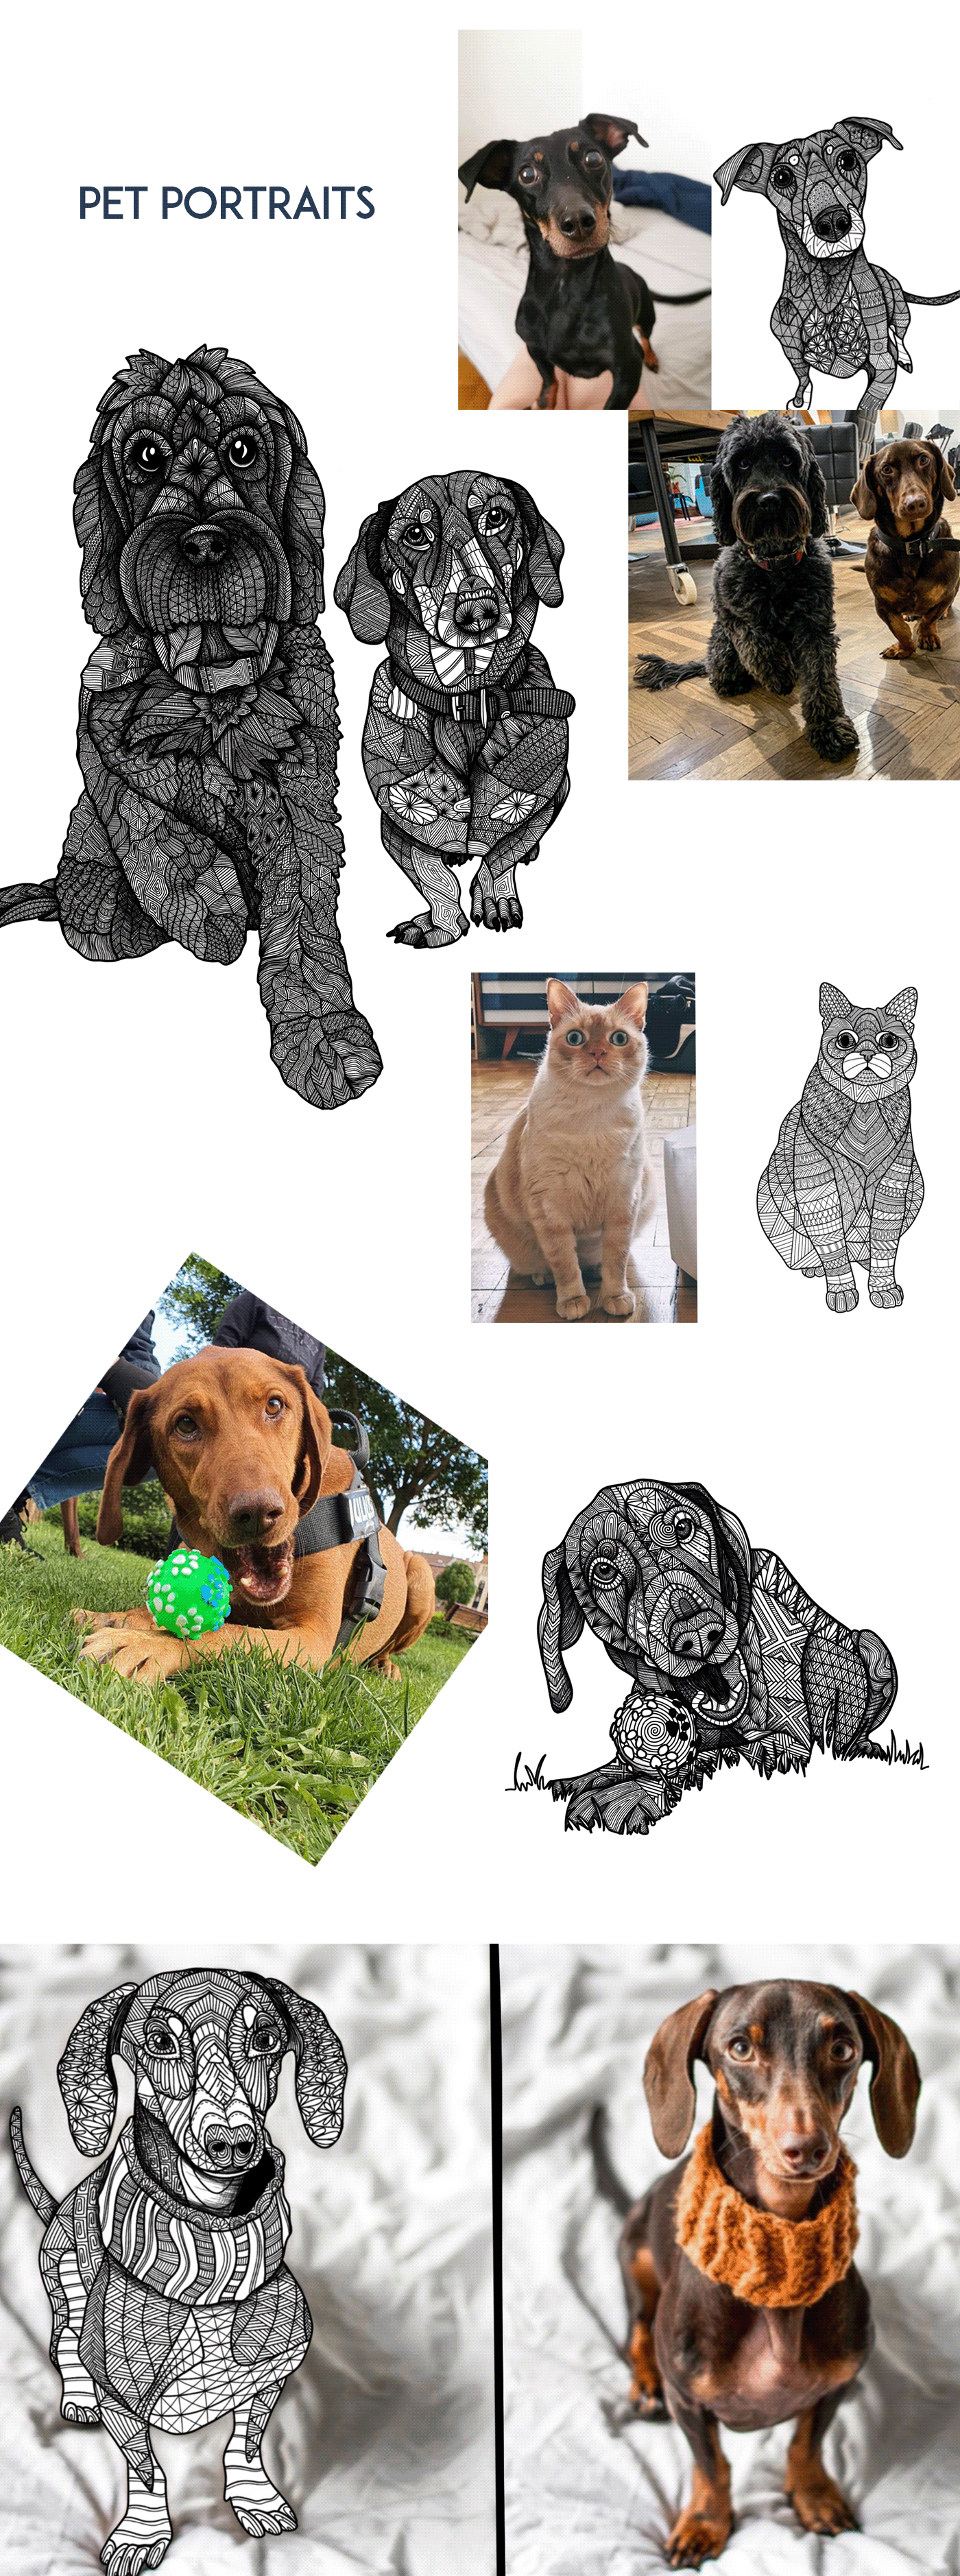 adultcoloring coloring Drawing  graphicdesign lineart Pet portrait zentagle